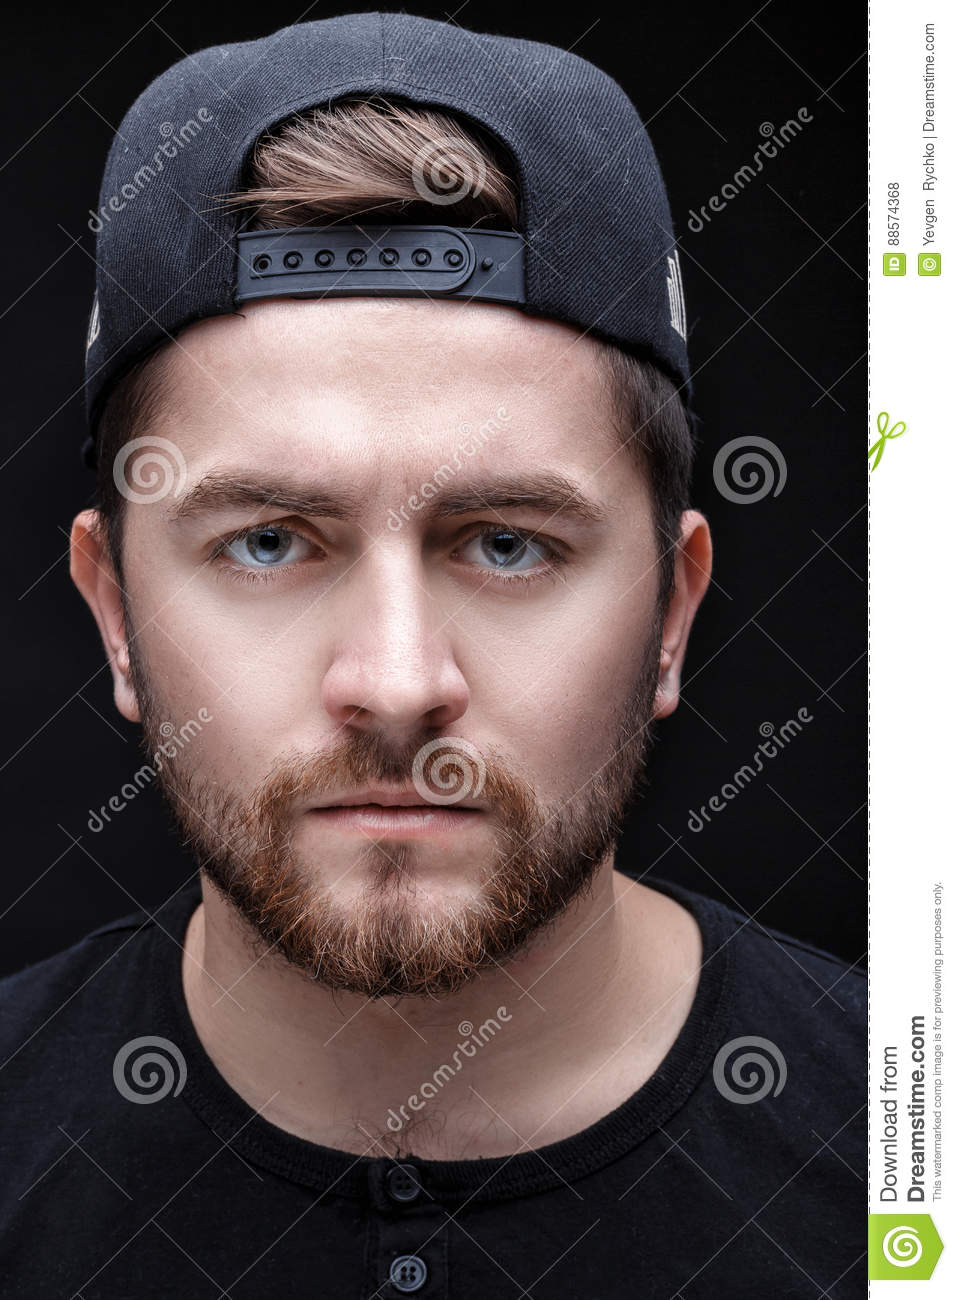 dd726cc65ca Portrait of a handsome young brunette man in a black shirt and cap on a  black background. rapper